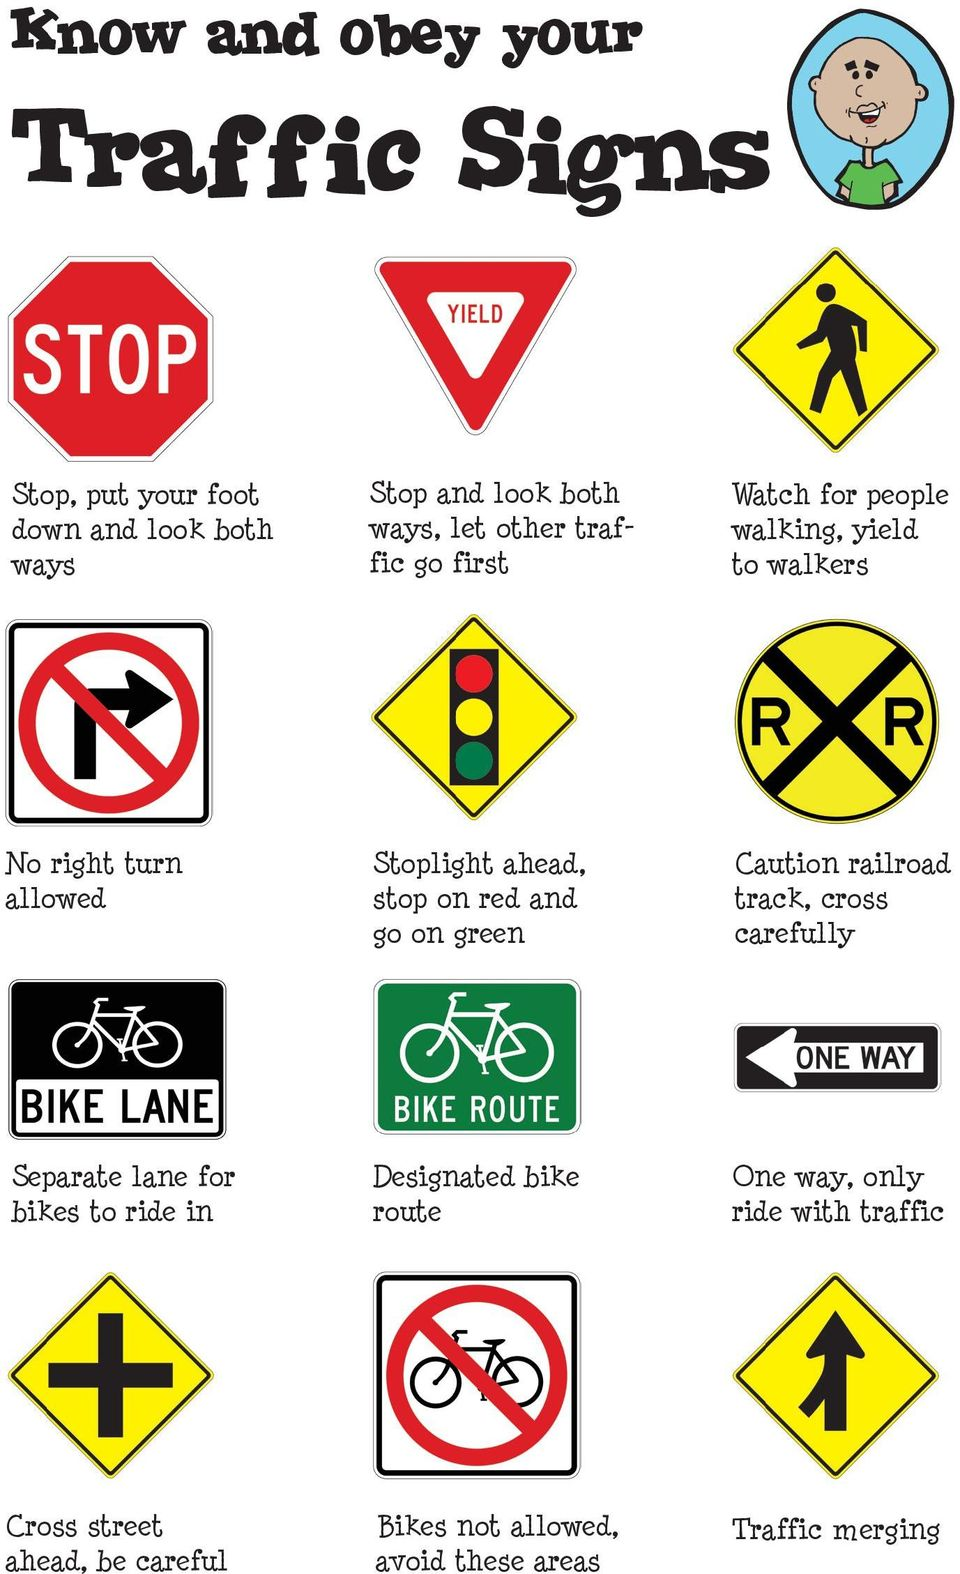 and go on green Caution railroad track, cross carefully Separate lane for bikes to ride in Designated bike route